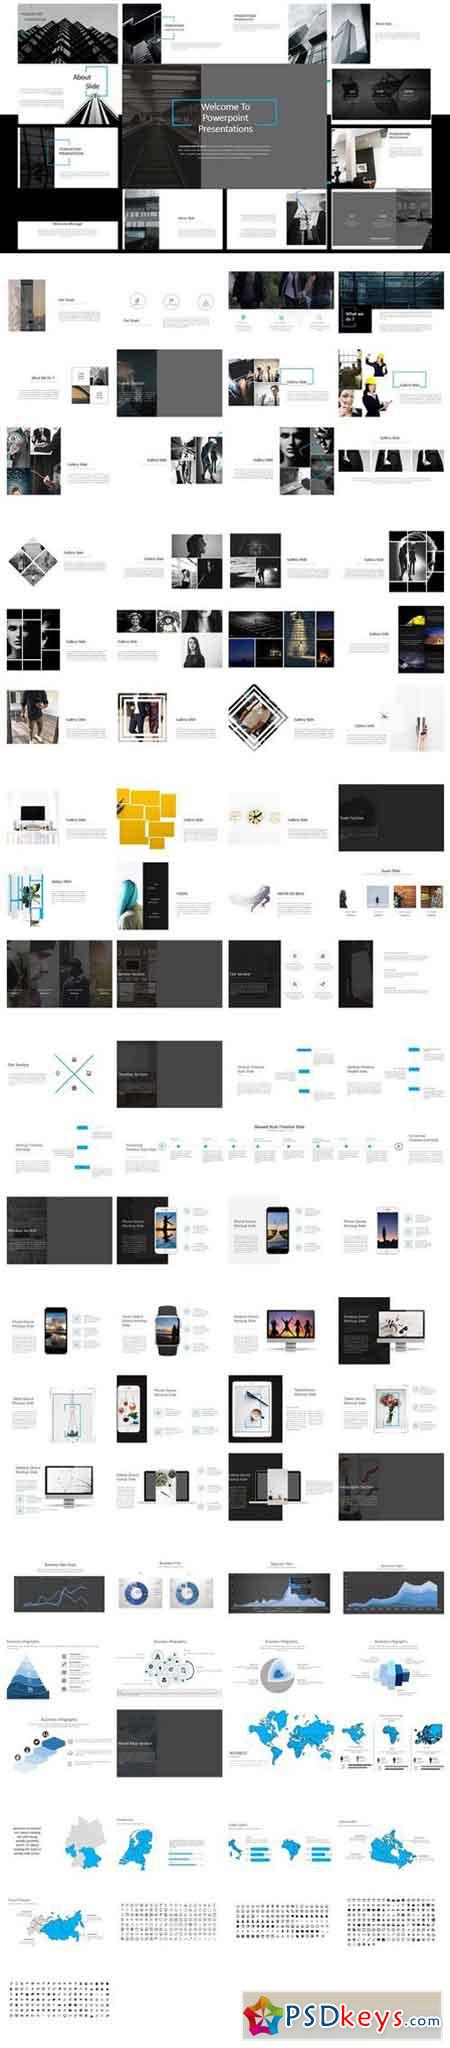 POWERPOINT PRESENTATIONS TEMPLATE 2205047